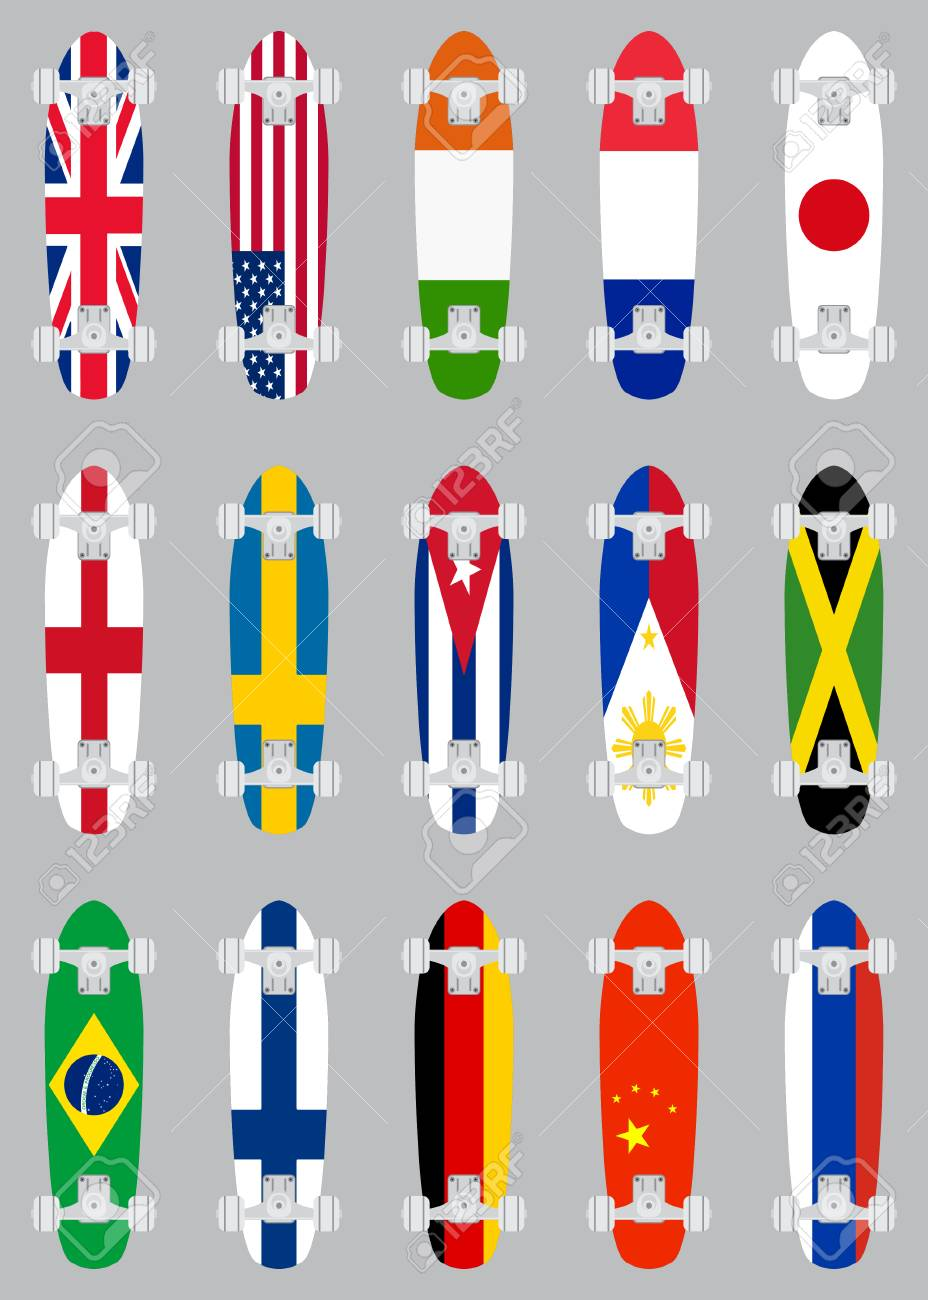 Skateboards with various flags objects flat design set  Colorful